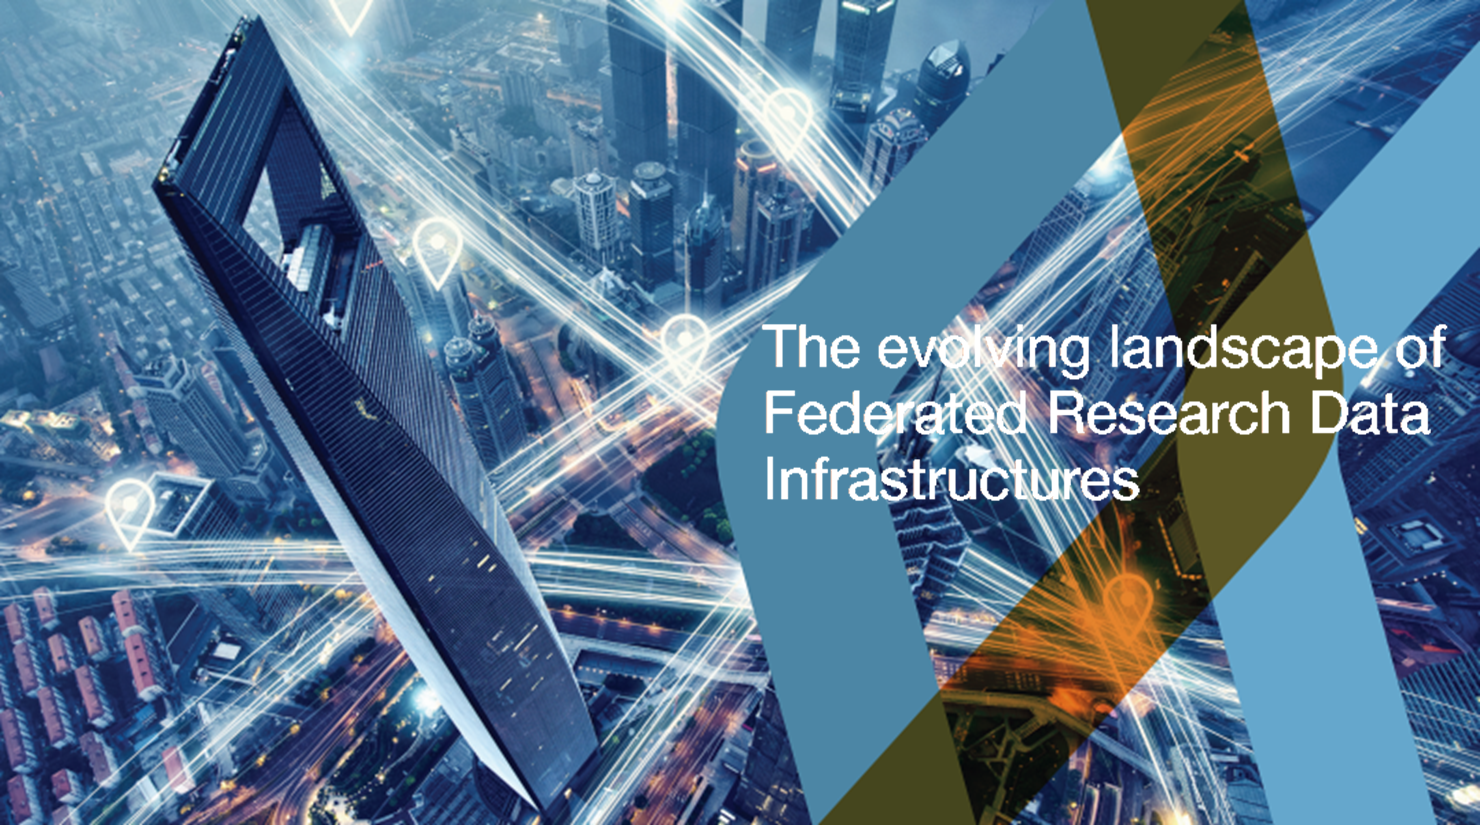 The Evolving Landscape of Federated Research Data Infrastructures: Knowledge Exchange  new report